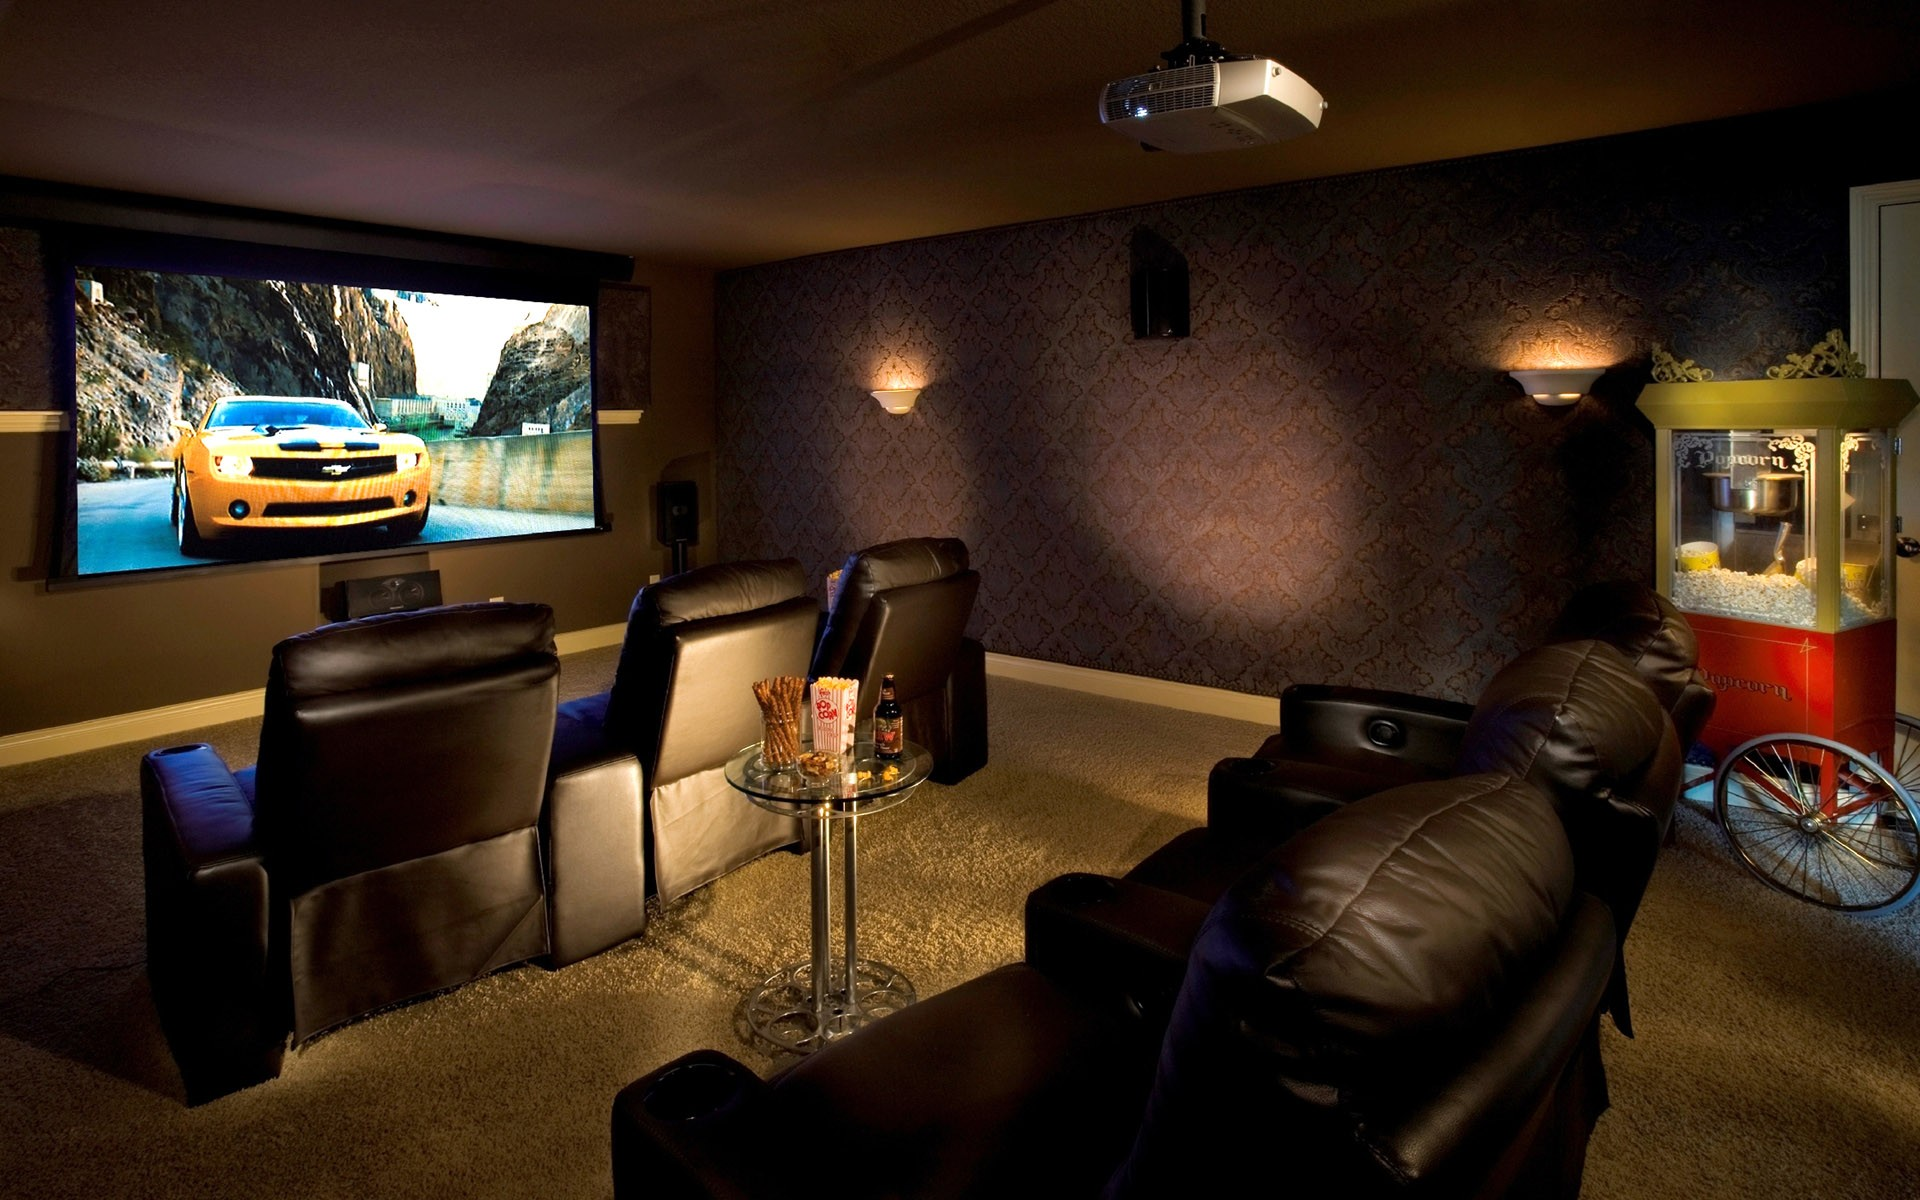 Home cinema ses yal t m evlerde akustik oda for Small room movie theater